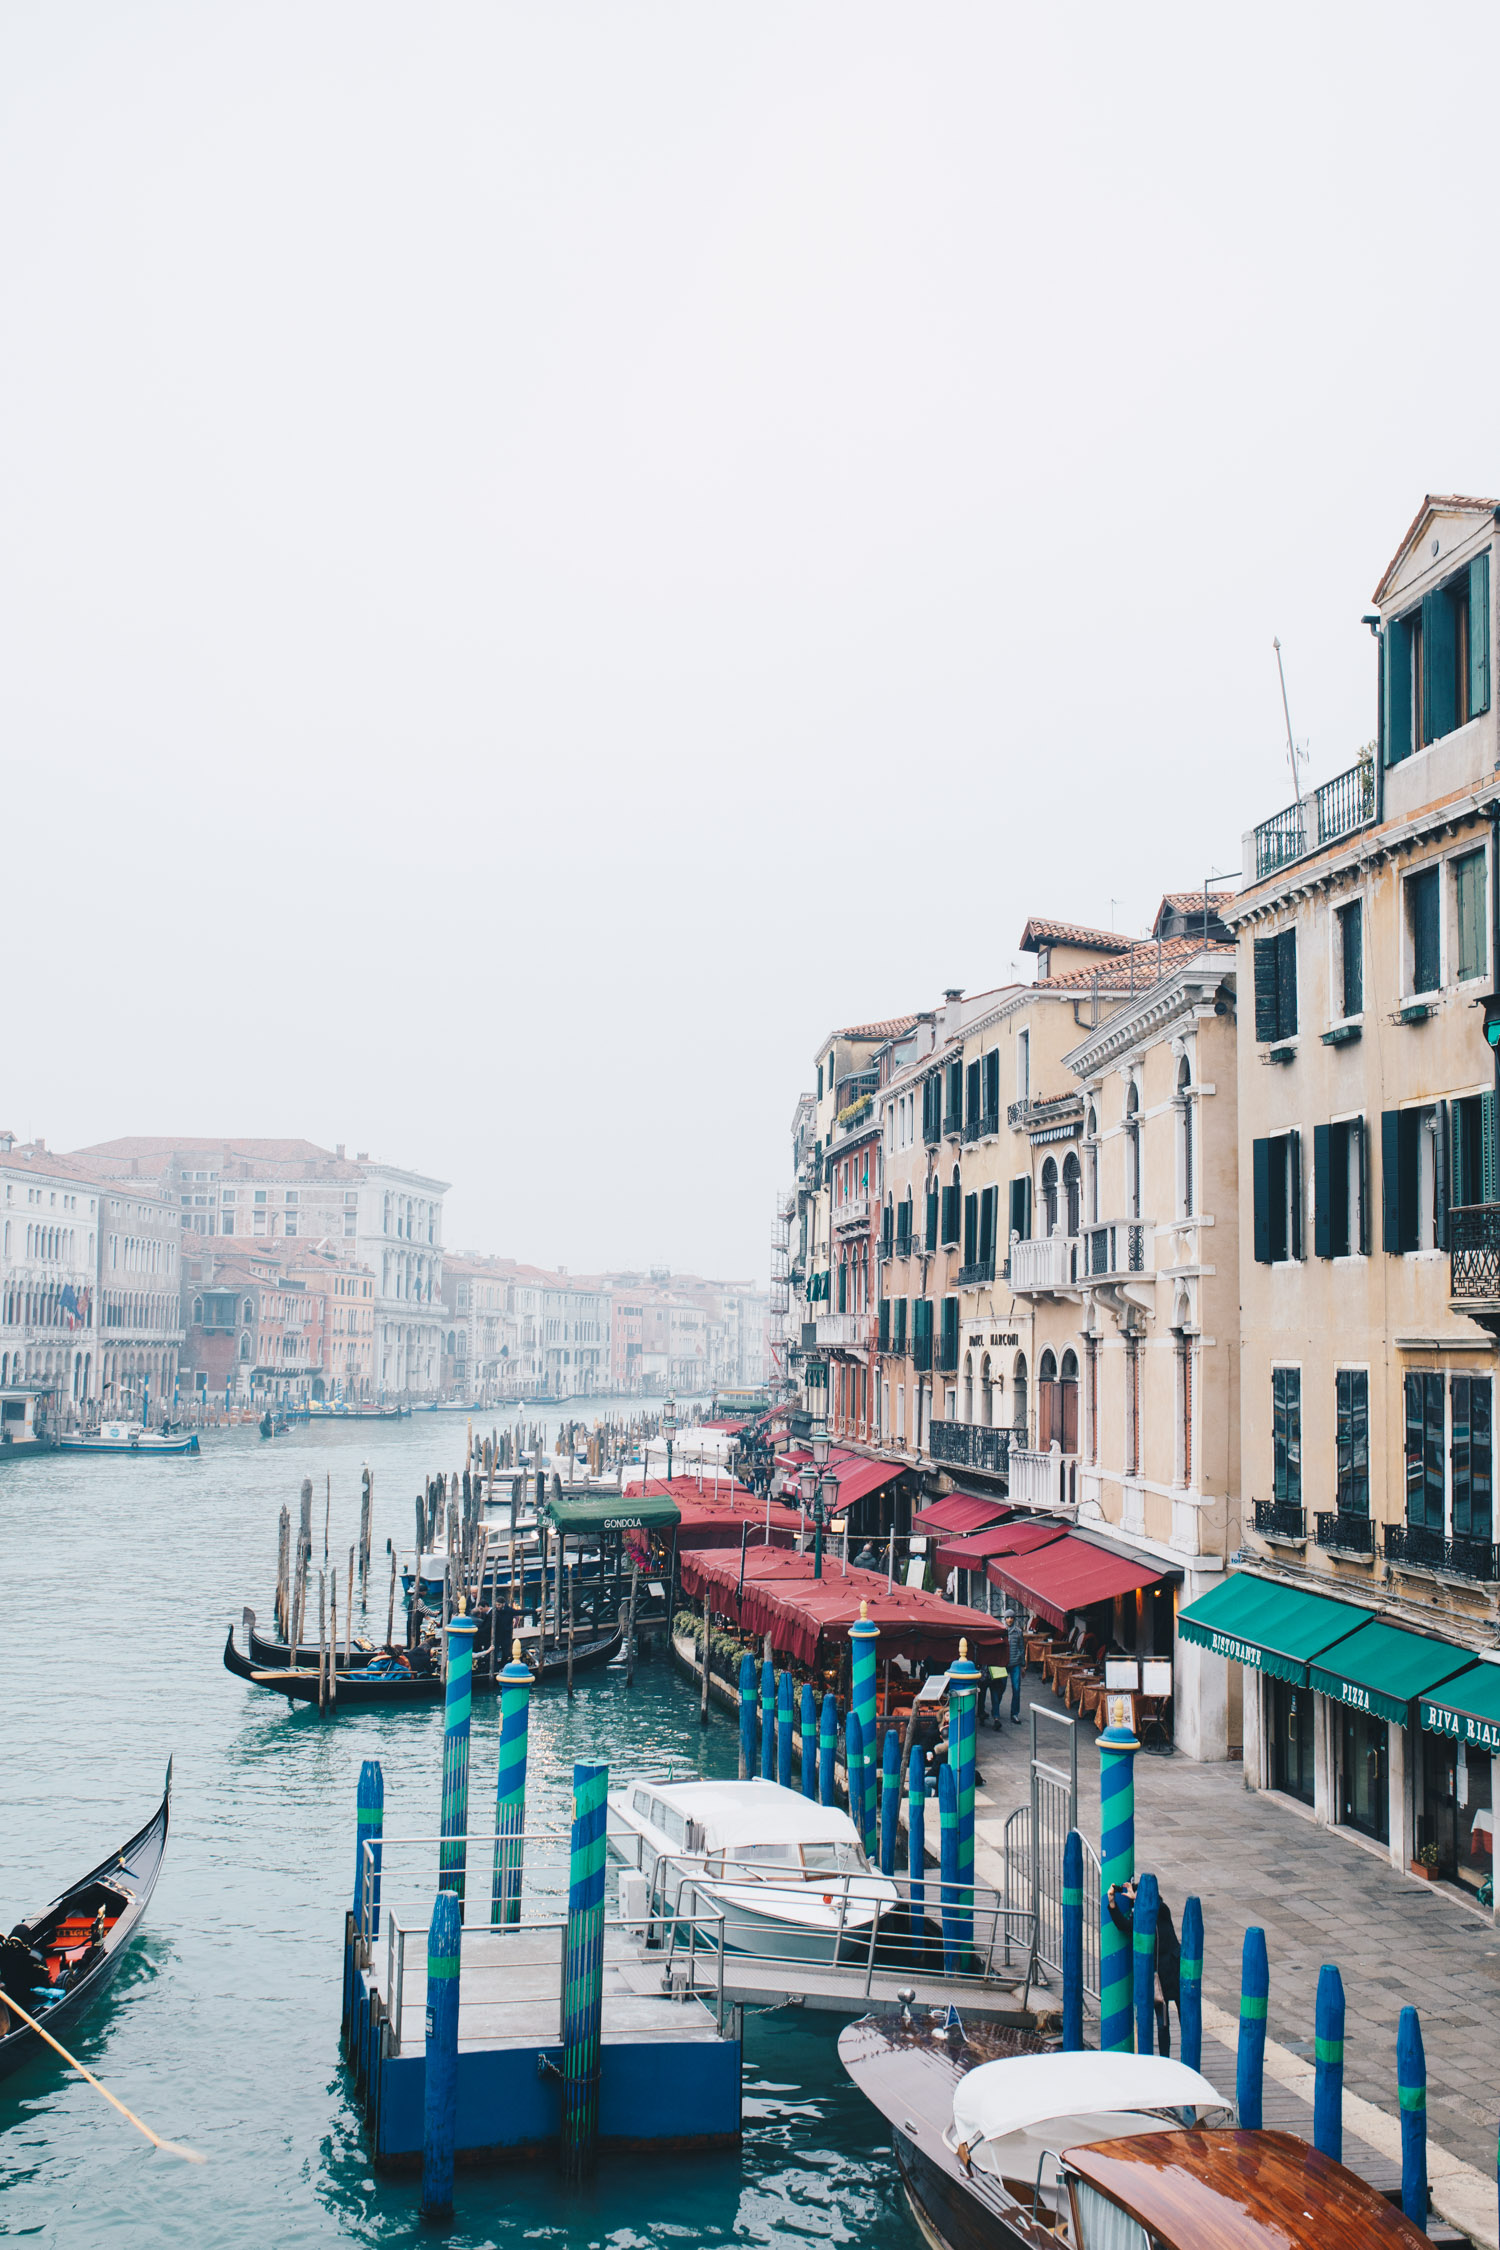 48h Venice Travel Post by Viviane Lenders